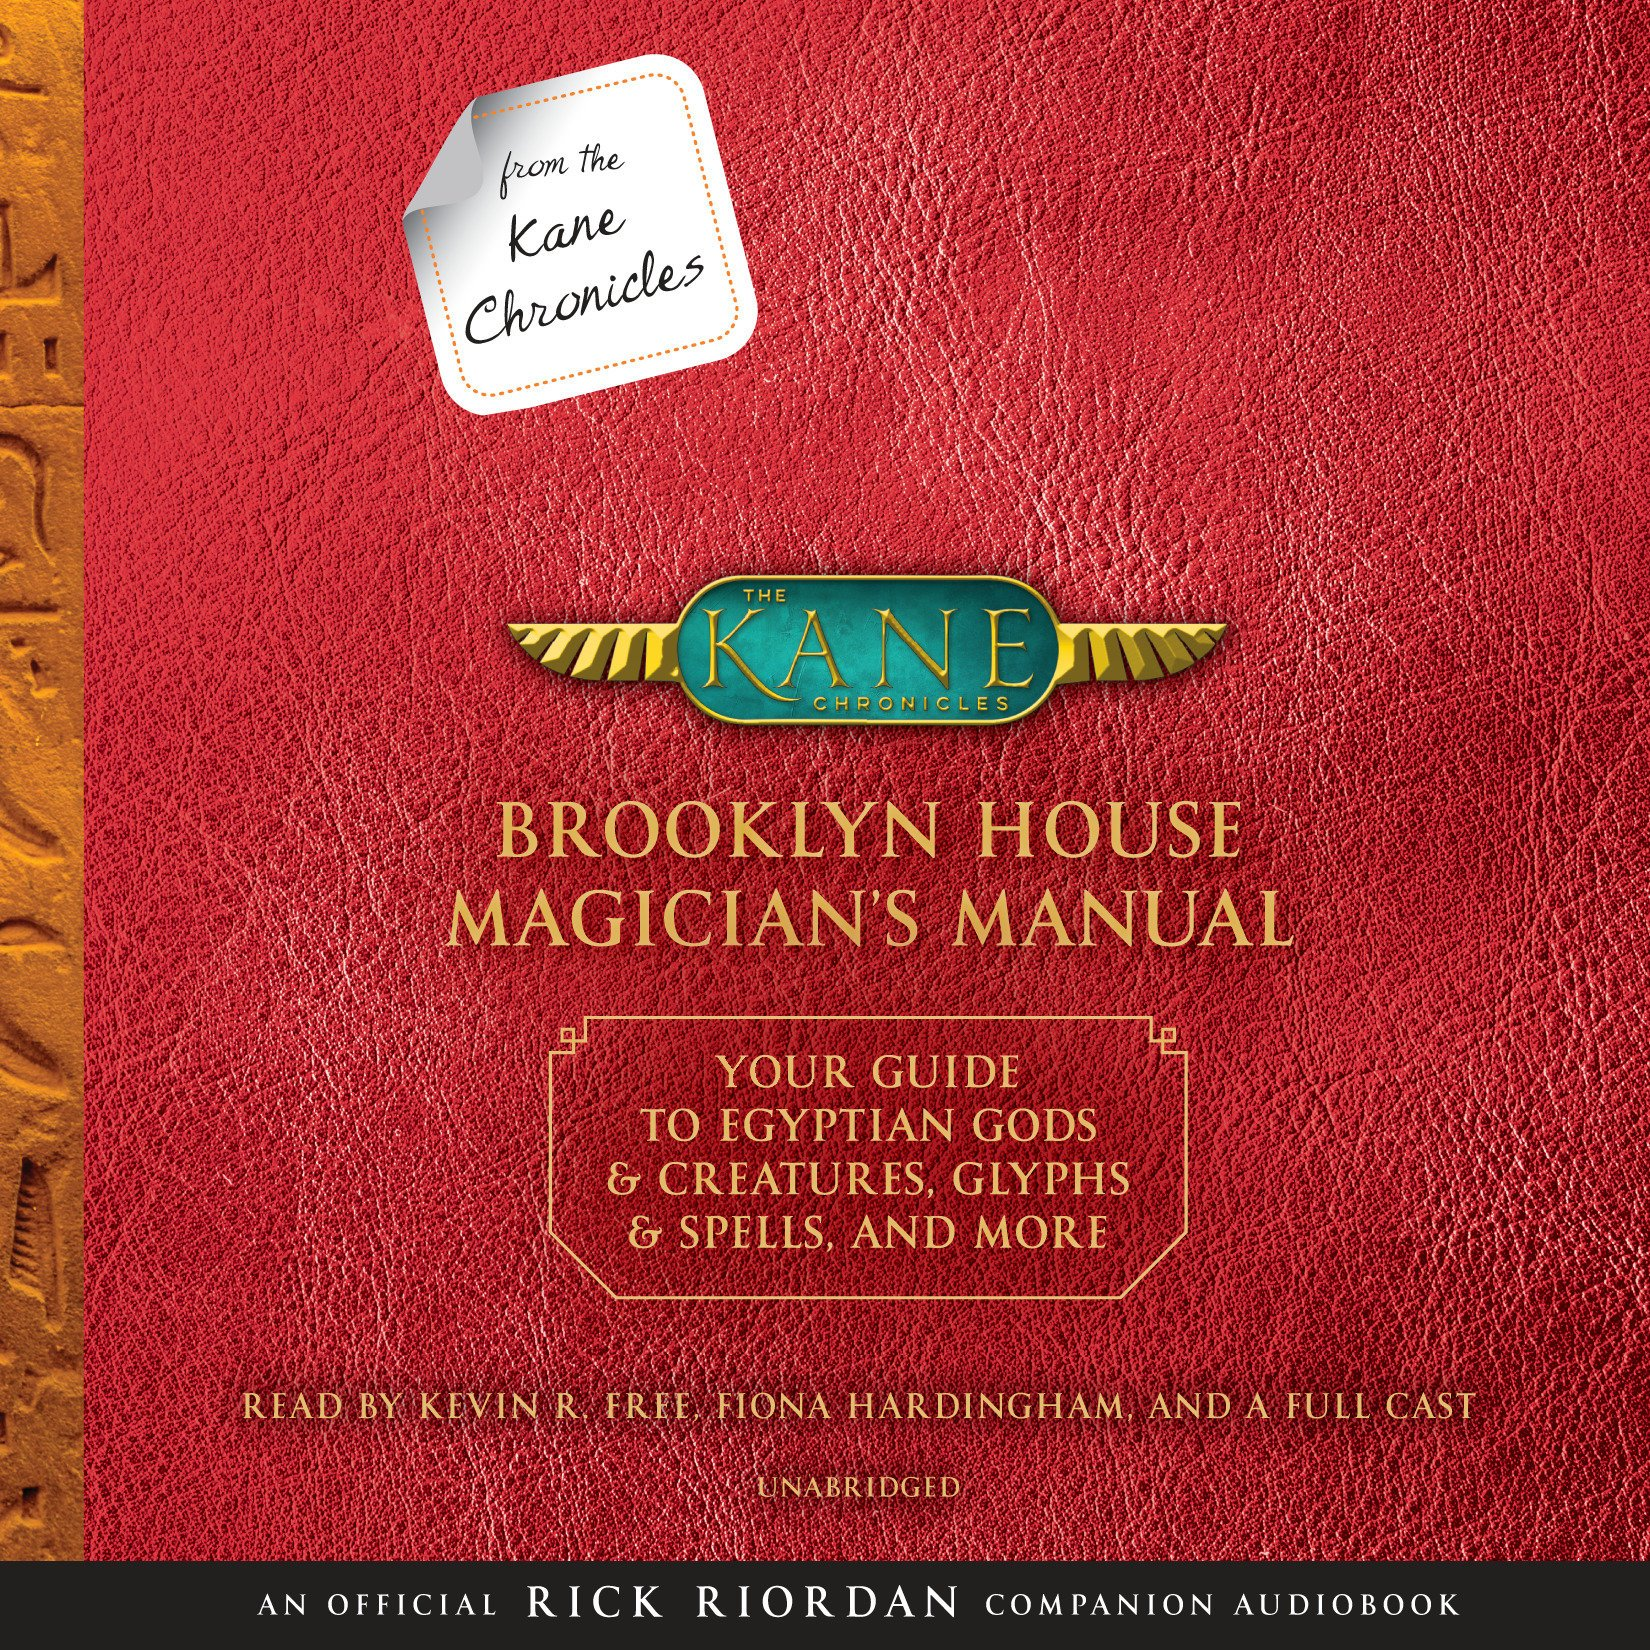 From the Kane Chronicles: Brooklyn House Magician's Manual (An Official Rick Riordan Companion Book): Your Guide to Egyptian Gods & Creatures, Glyphs & Spells, & More PDF Text fb2 book